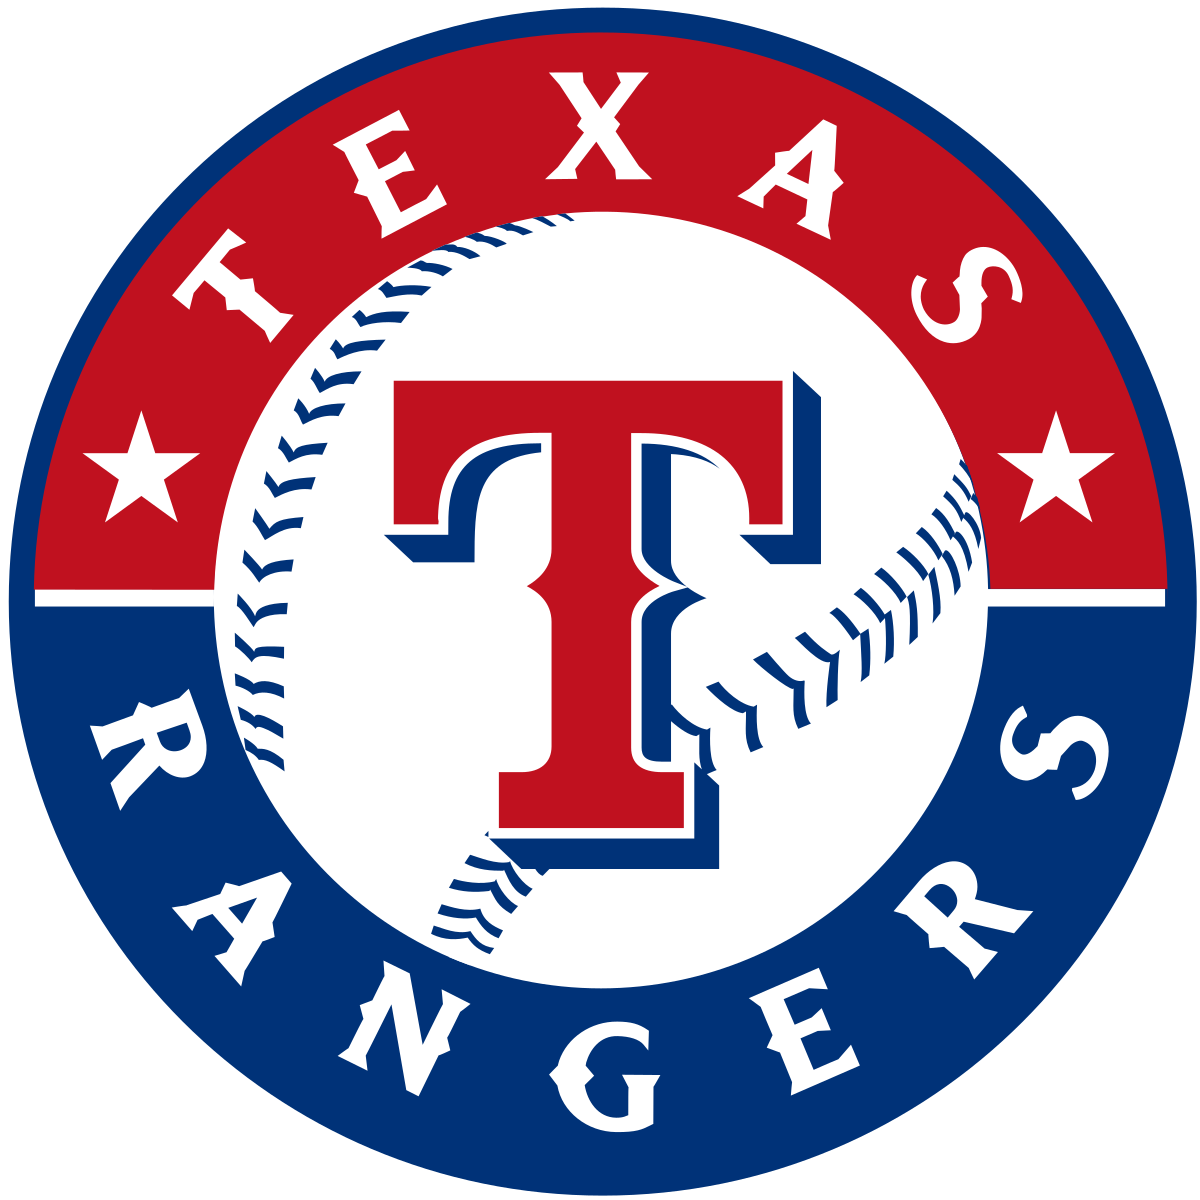 Texas Rangers - The Texas Rangers are an American professional baseball team based in Arlington, Texas.  We are excited to have a member from their office come speak to us about how the Texas Rangers get involved with the community and how we can be involved with them.